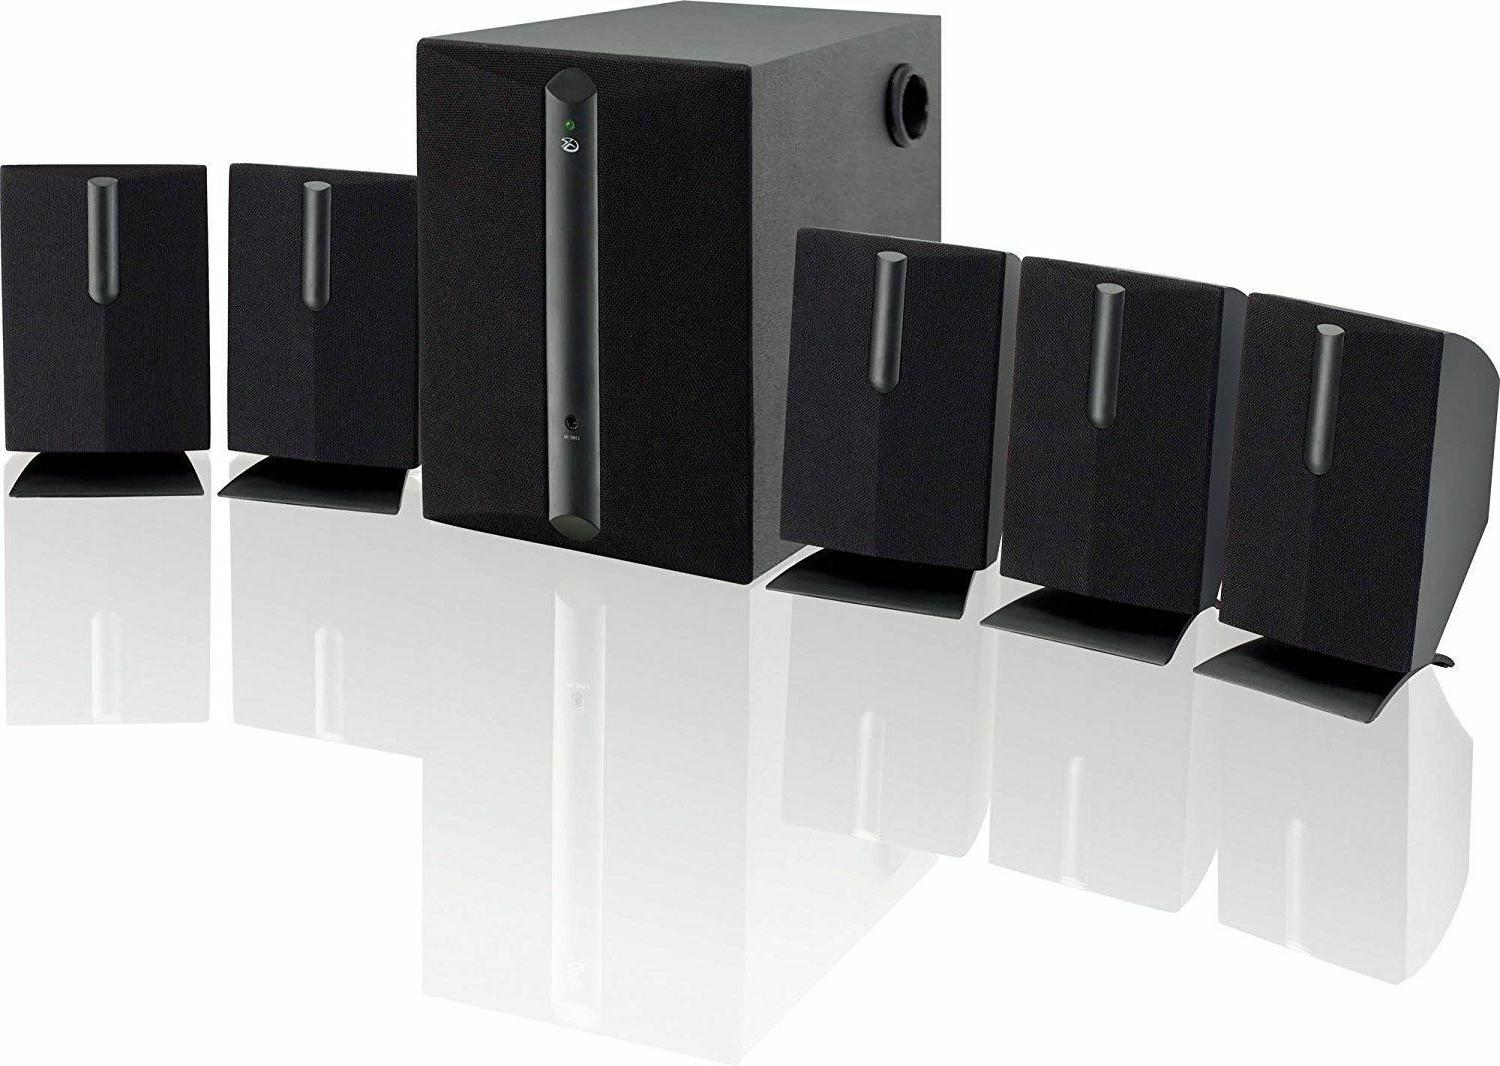 Tv Home Theater Speaker System Surround Sound Bar Set 800W 5